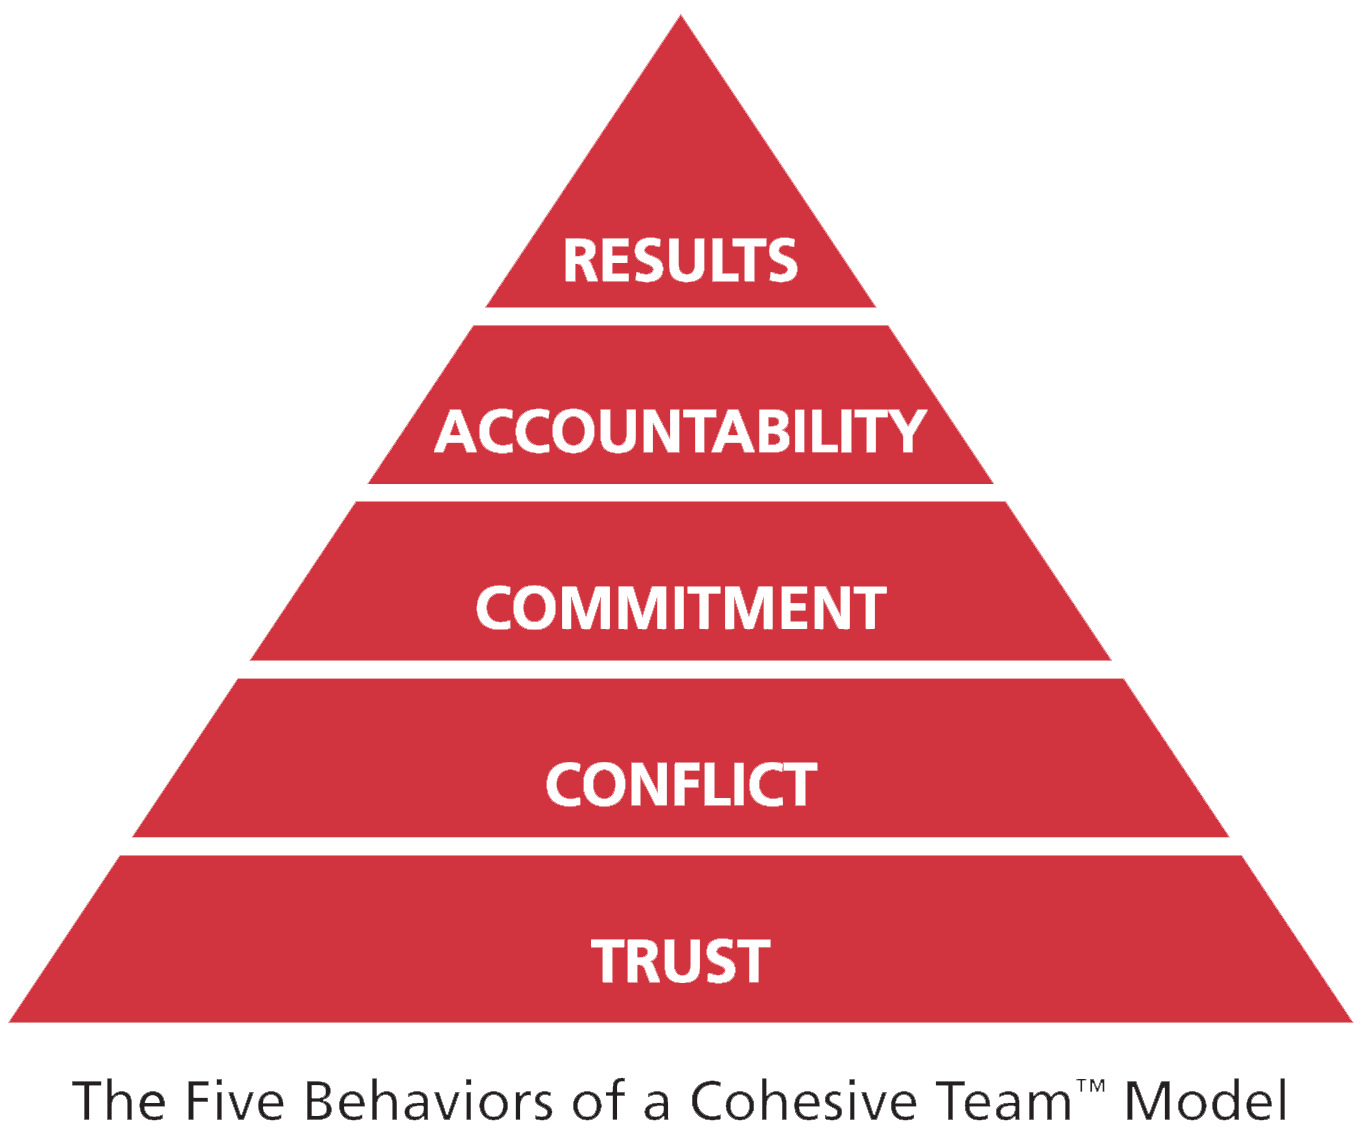 Five Behaviors of a Cohesive Tean